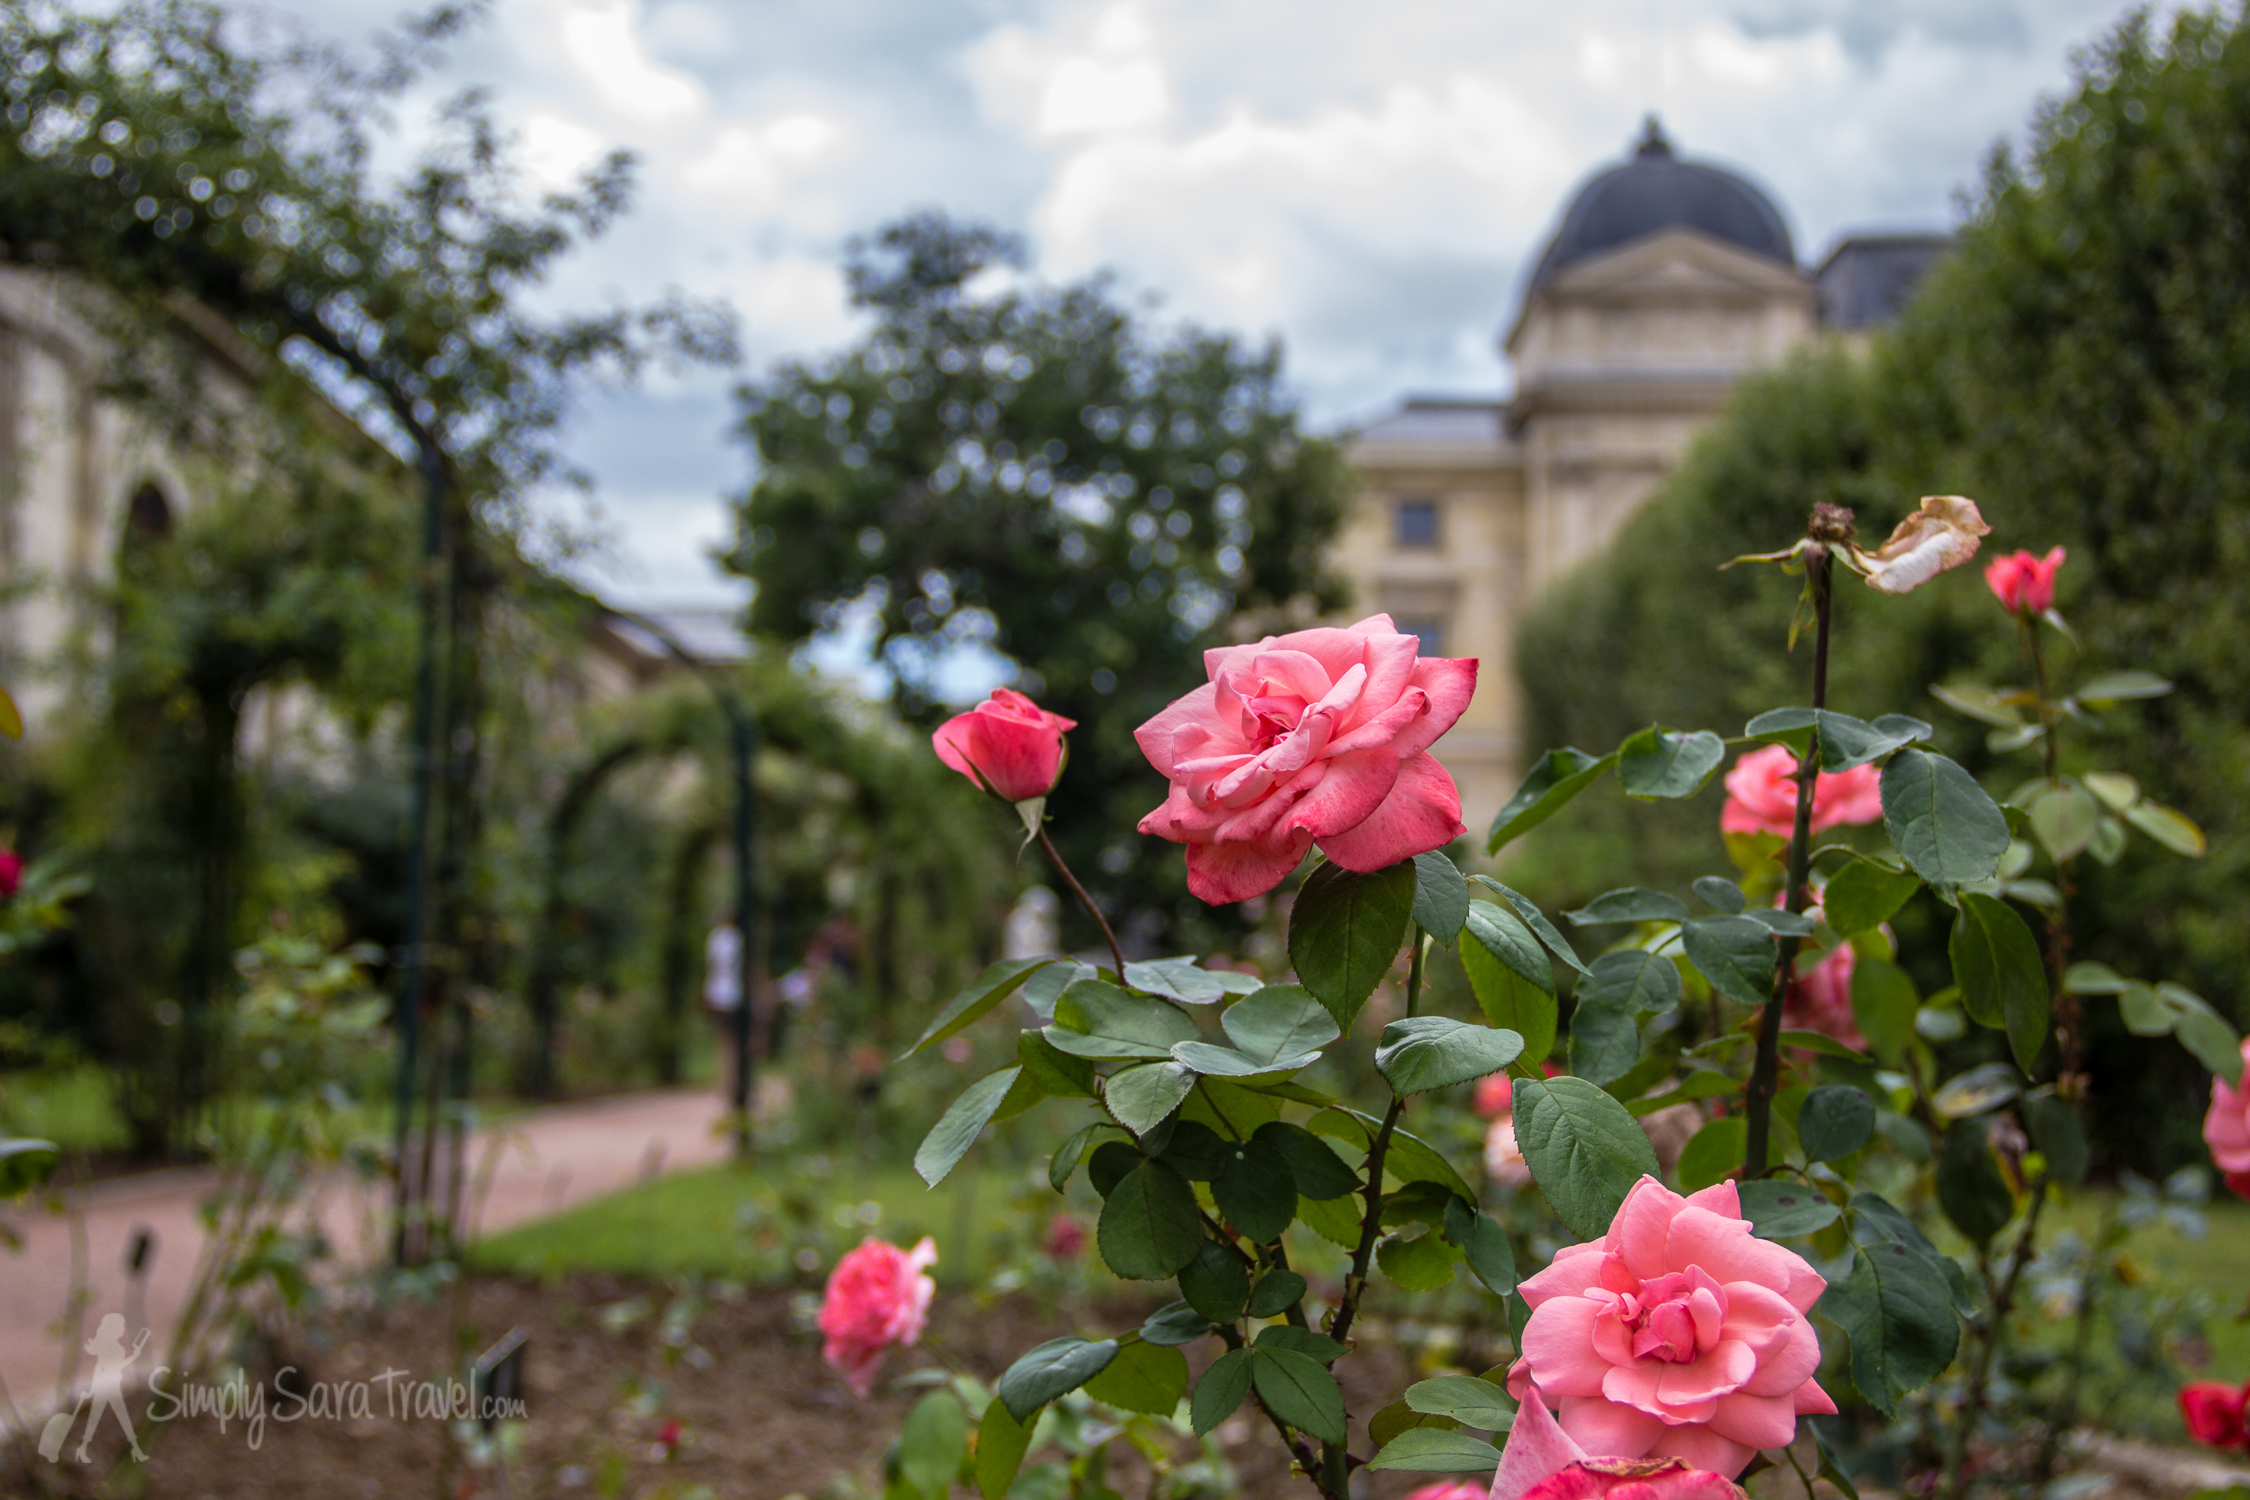 Roses at the Jardin des Plantes, by the Natural History Museum, Paris